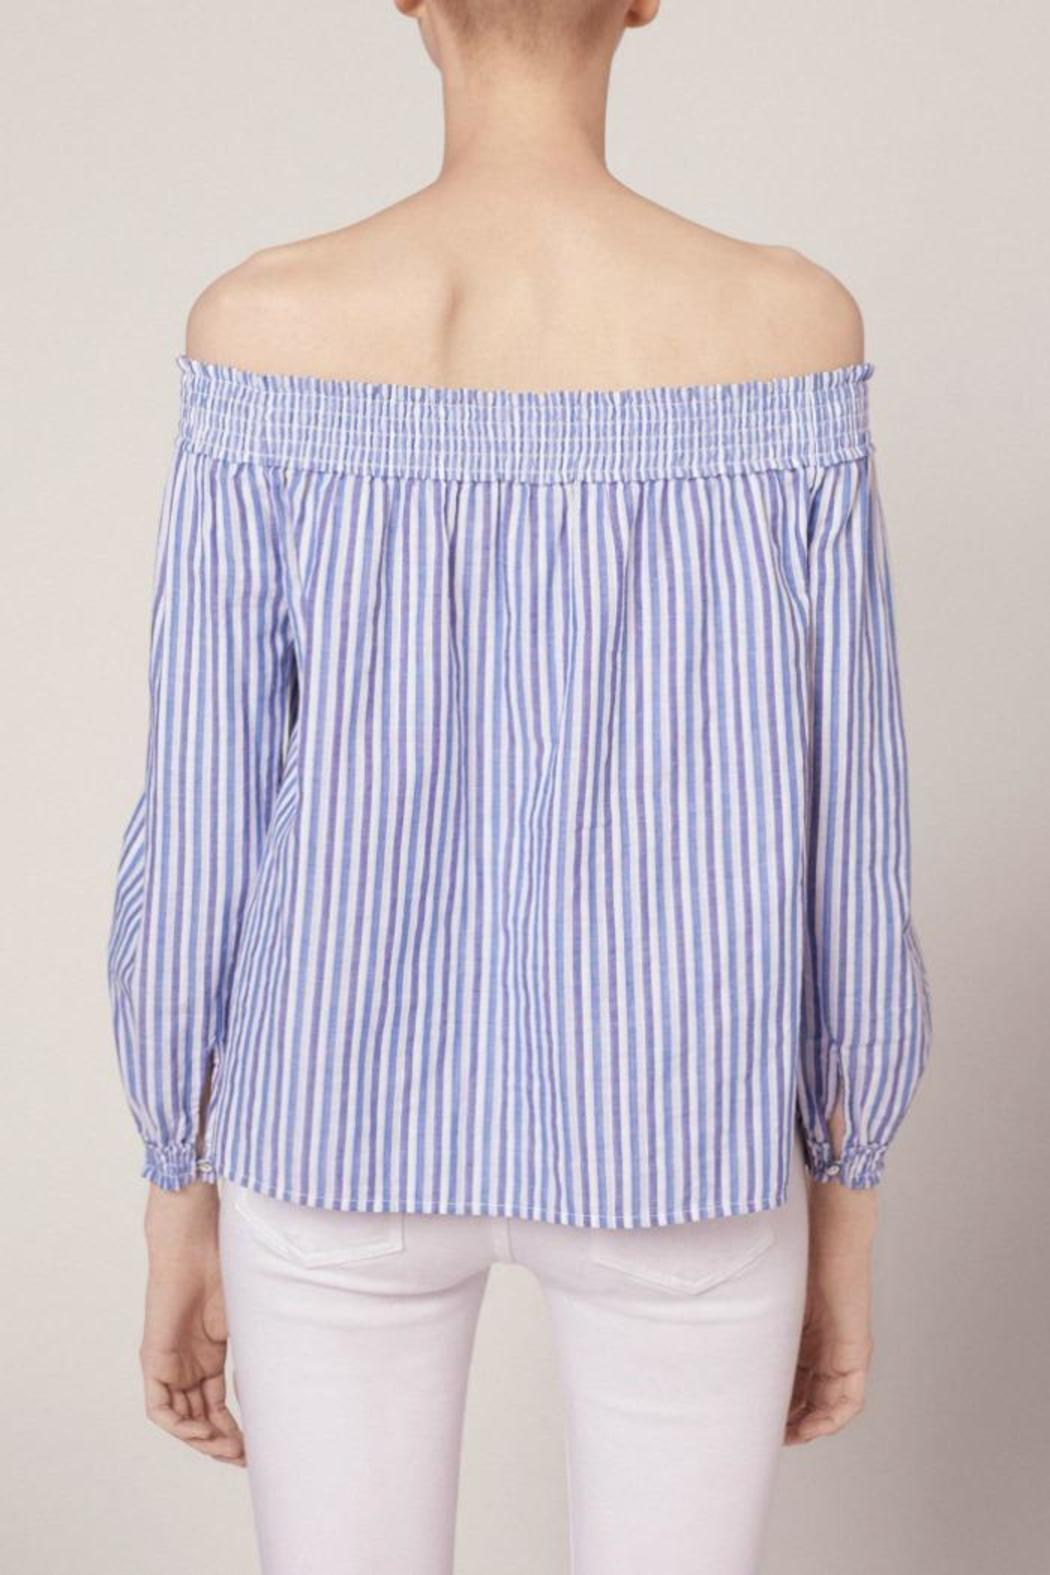 Rag & Bone Striped Drew Top - Front Full Image